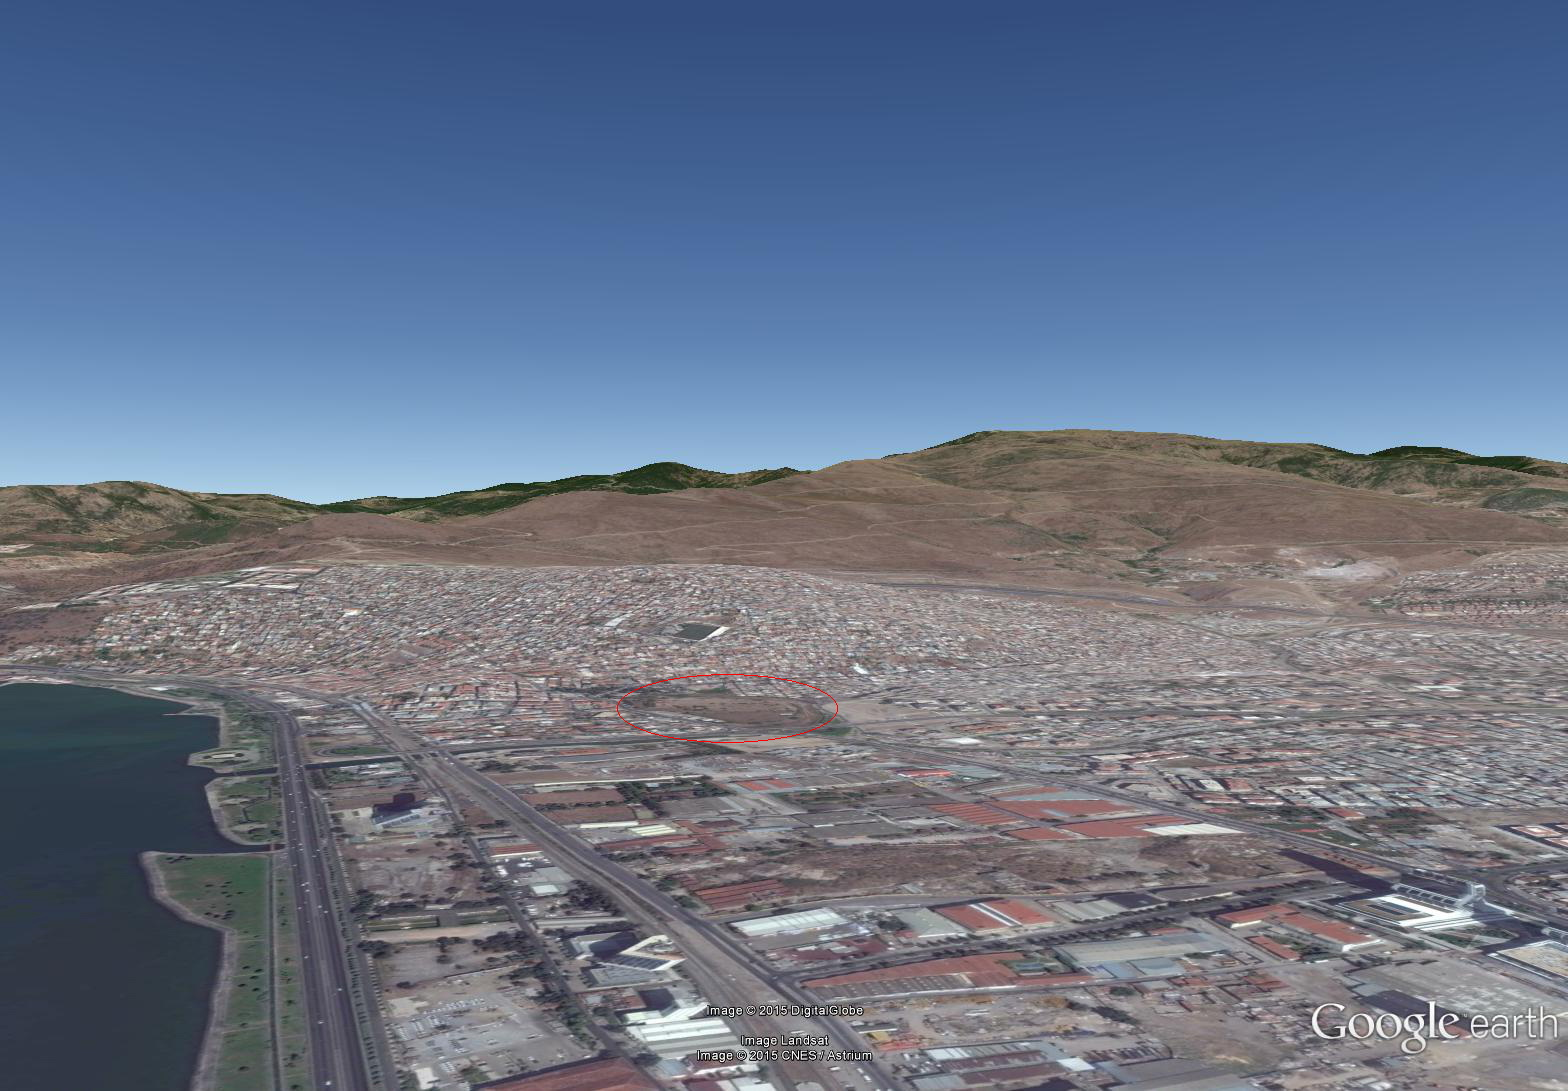 google earth view of Izmir with the hill of Old Smyrna